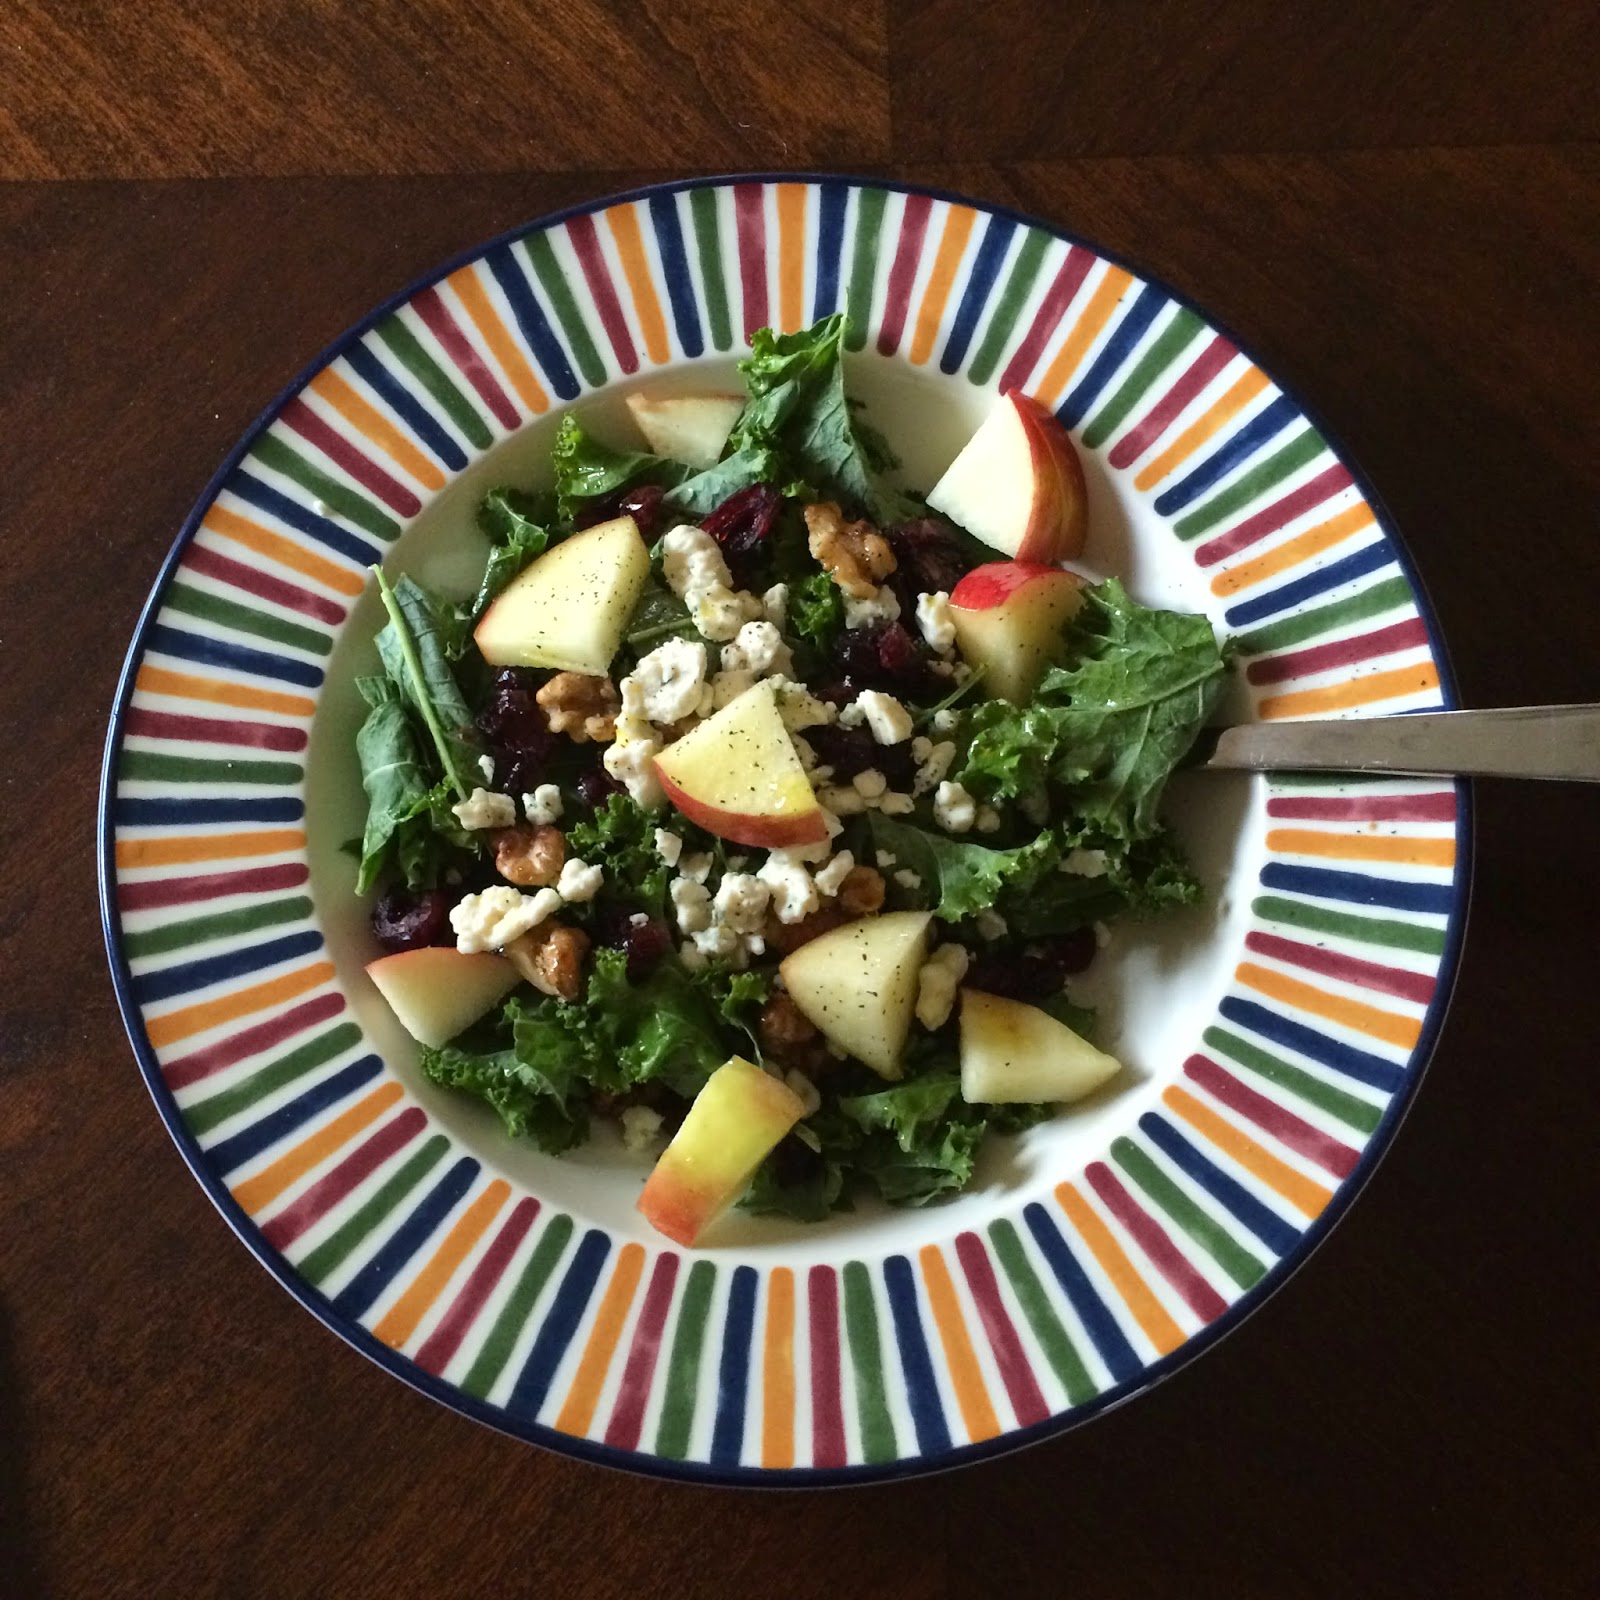 Salad - Walnut - Apple - Kale - Vegetarian